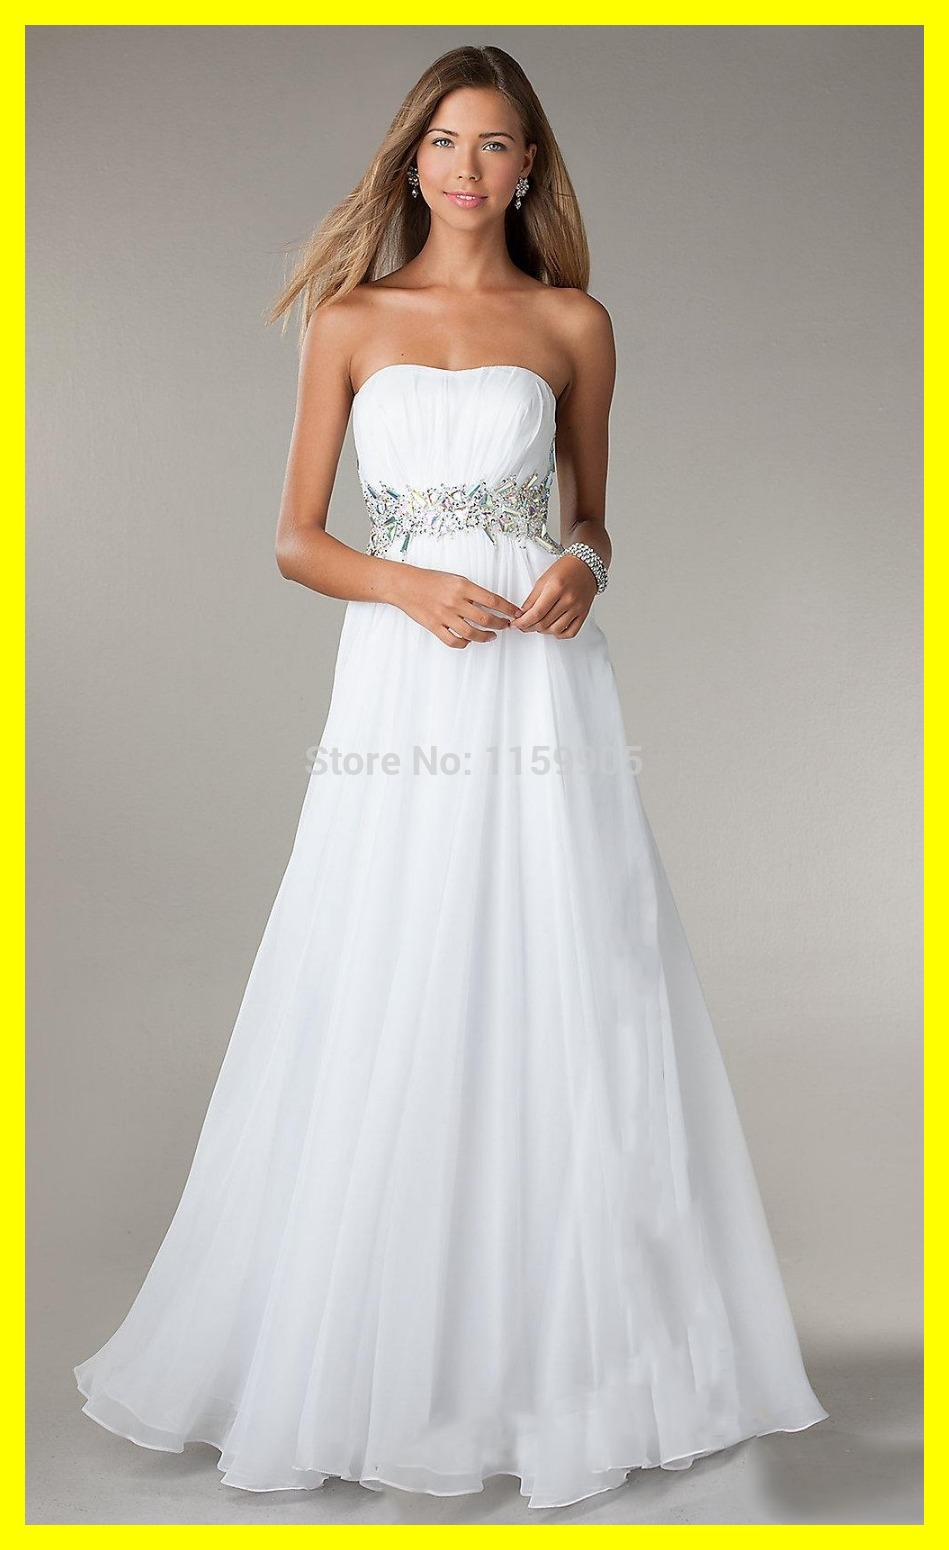 Bridesmaid Dresses Rochester Ny Wedding Dress Ideas With